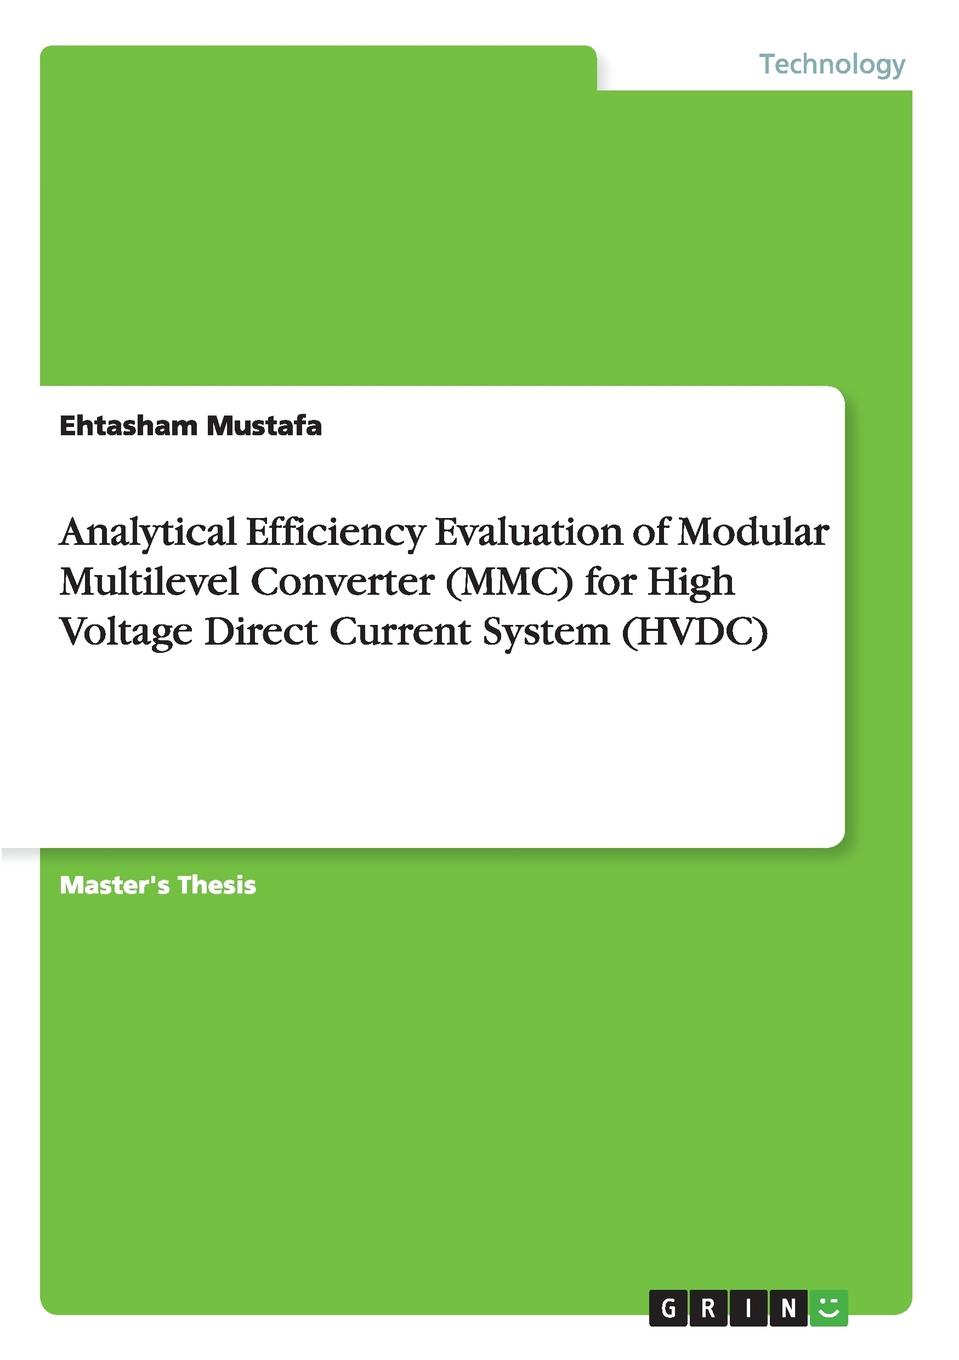 Ehtasham Mustafa Analytical Efficiency Evaluation of Modular Multilevel Converter (MMC) for High Voltage Direct Current System (HVDC) rs485 isolation communication module 232 to 485 converter serial port conversion module